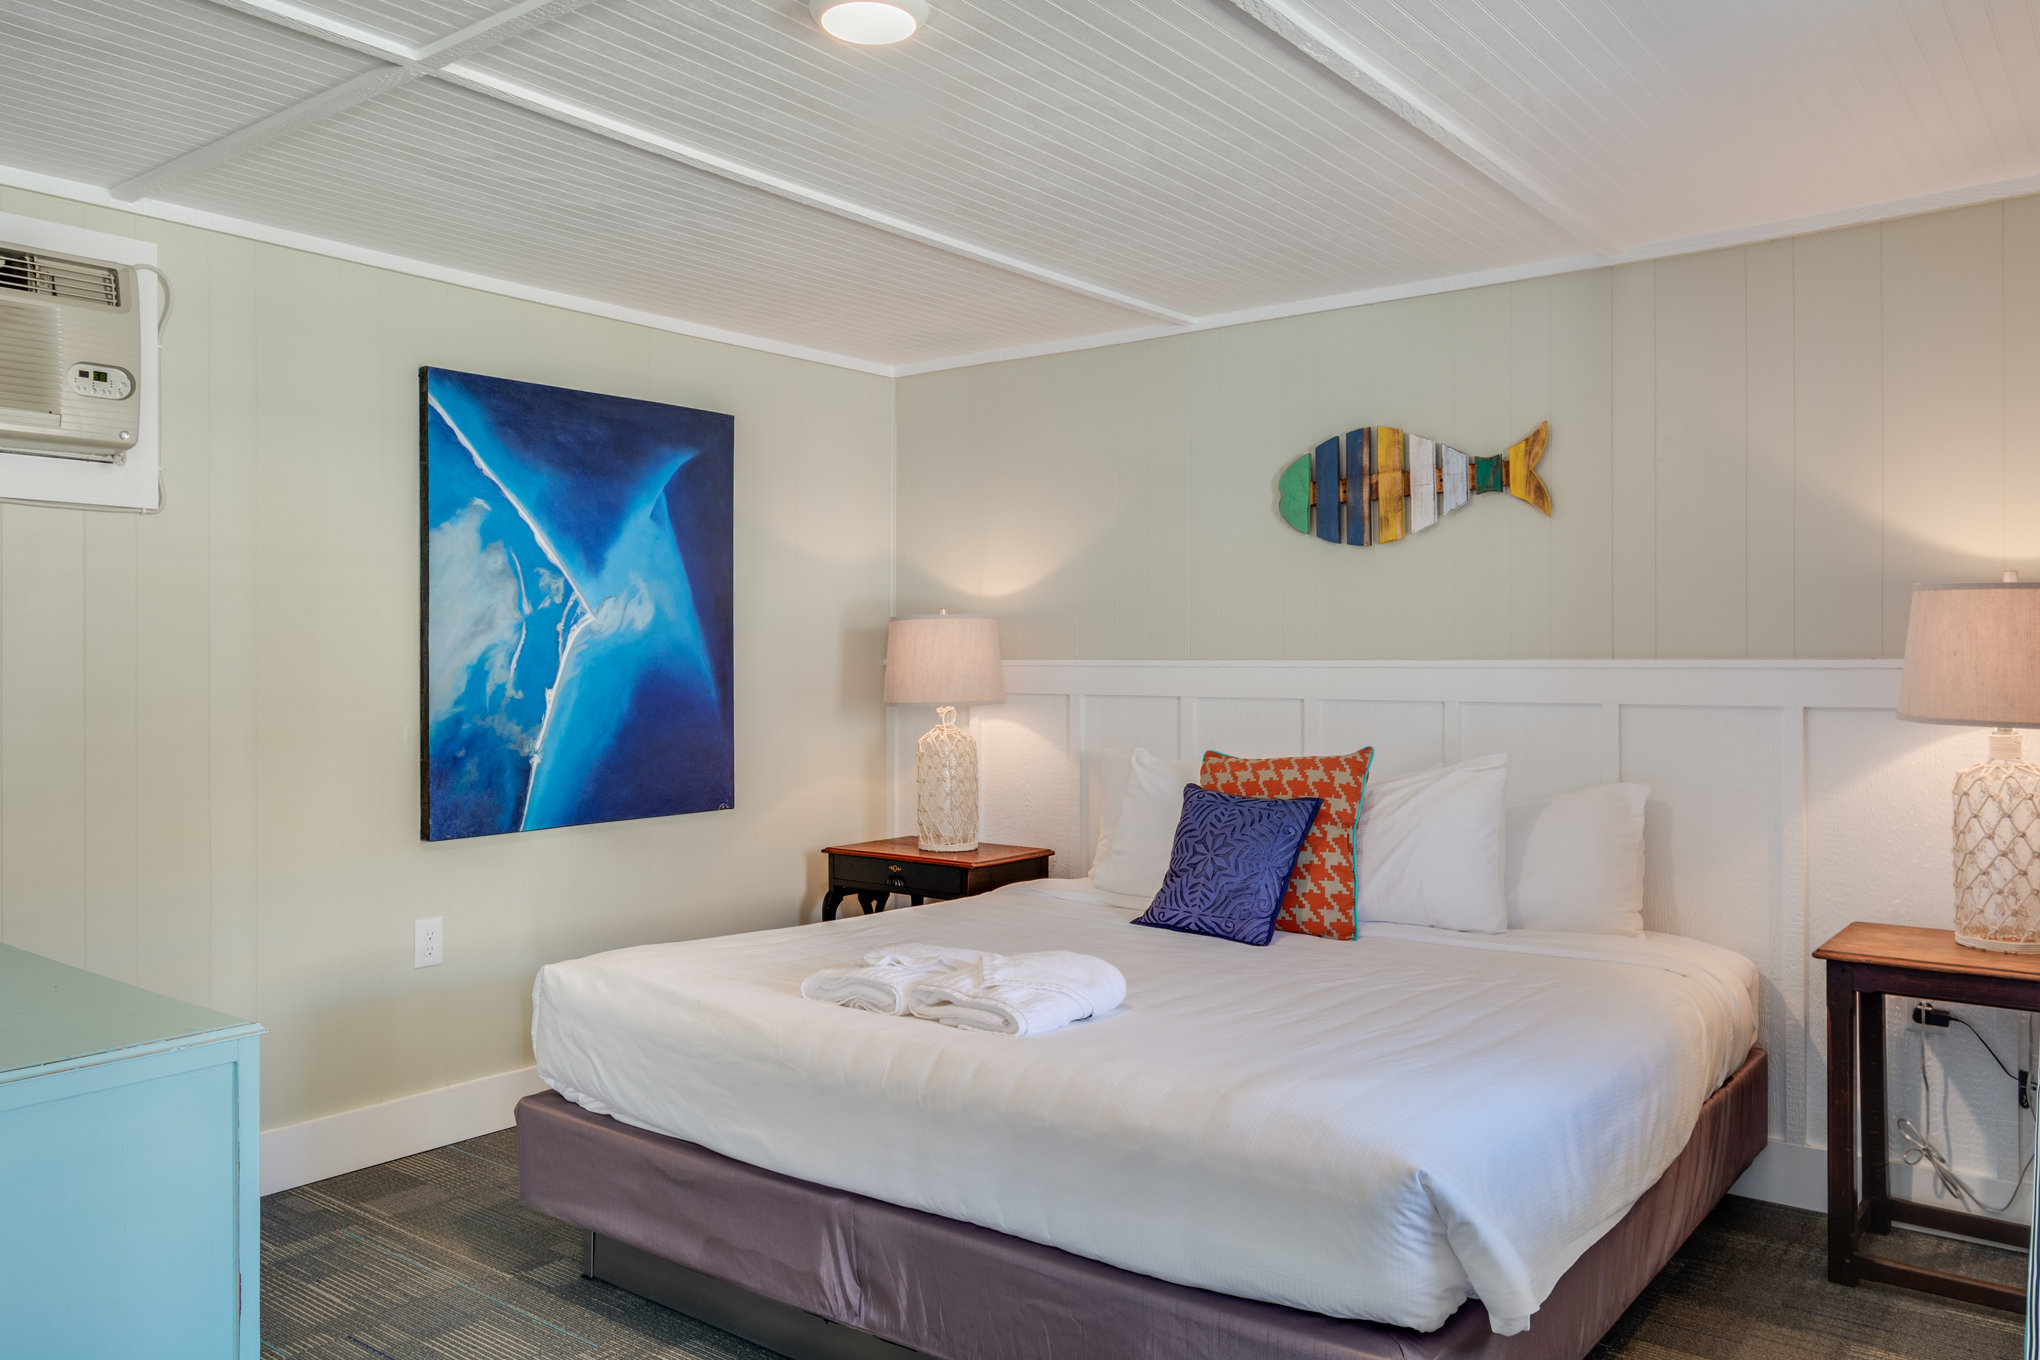 TH06: The Yellowfin Room